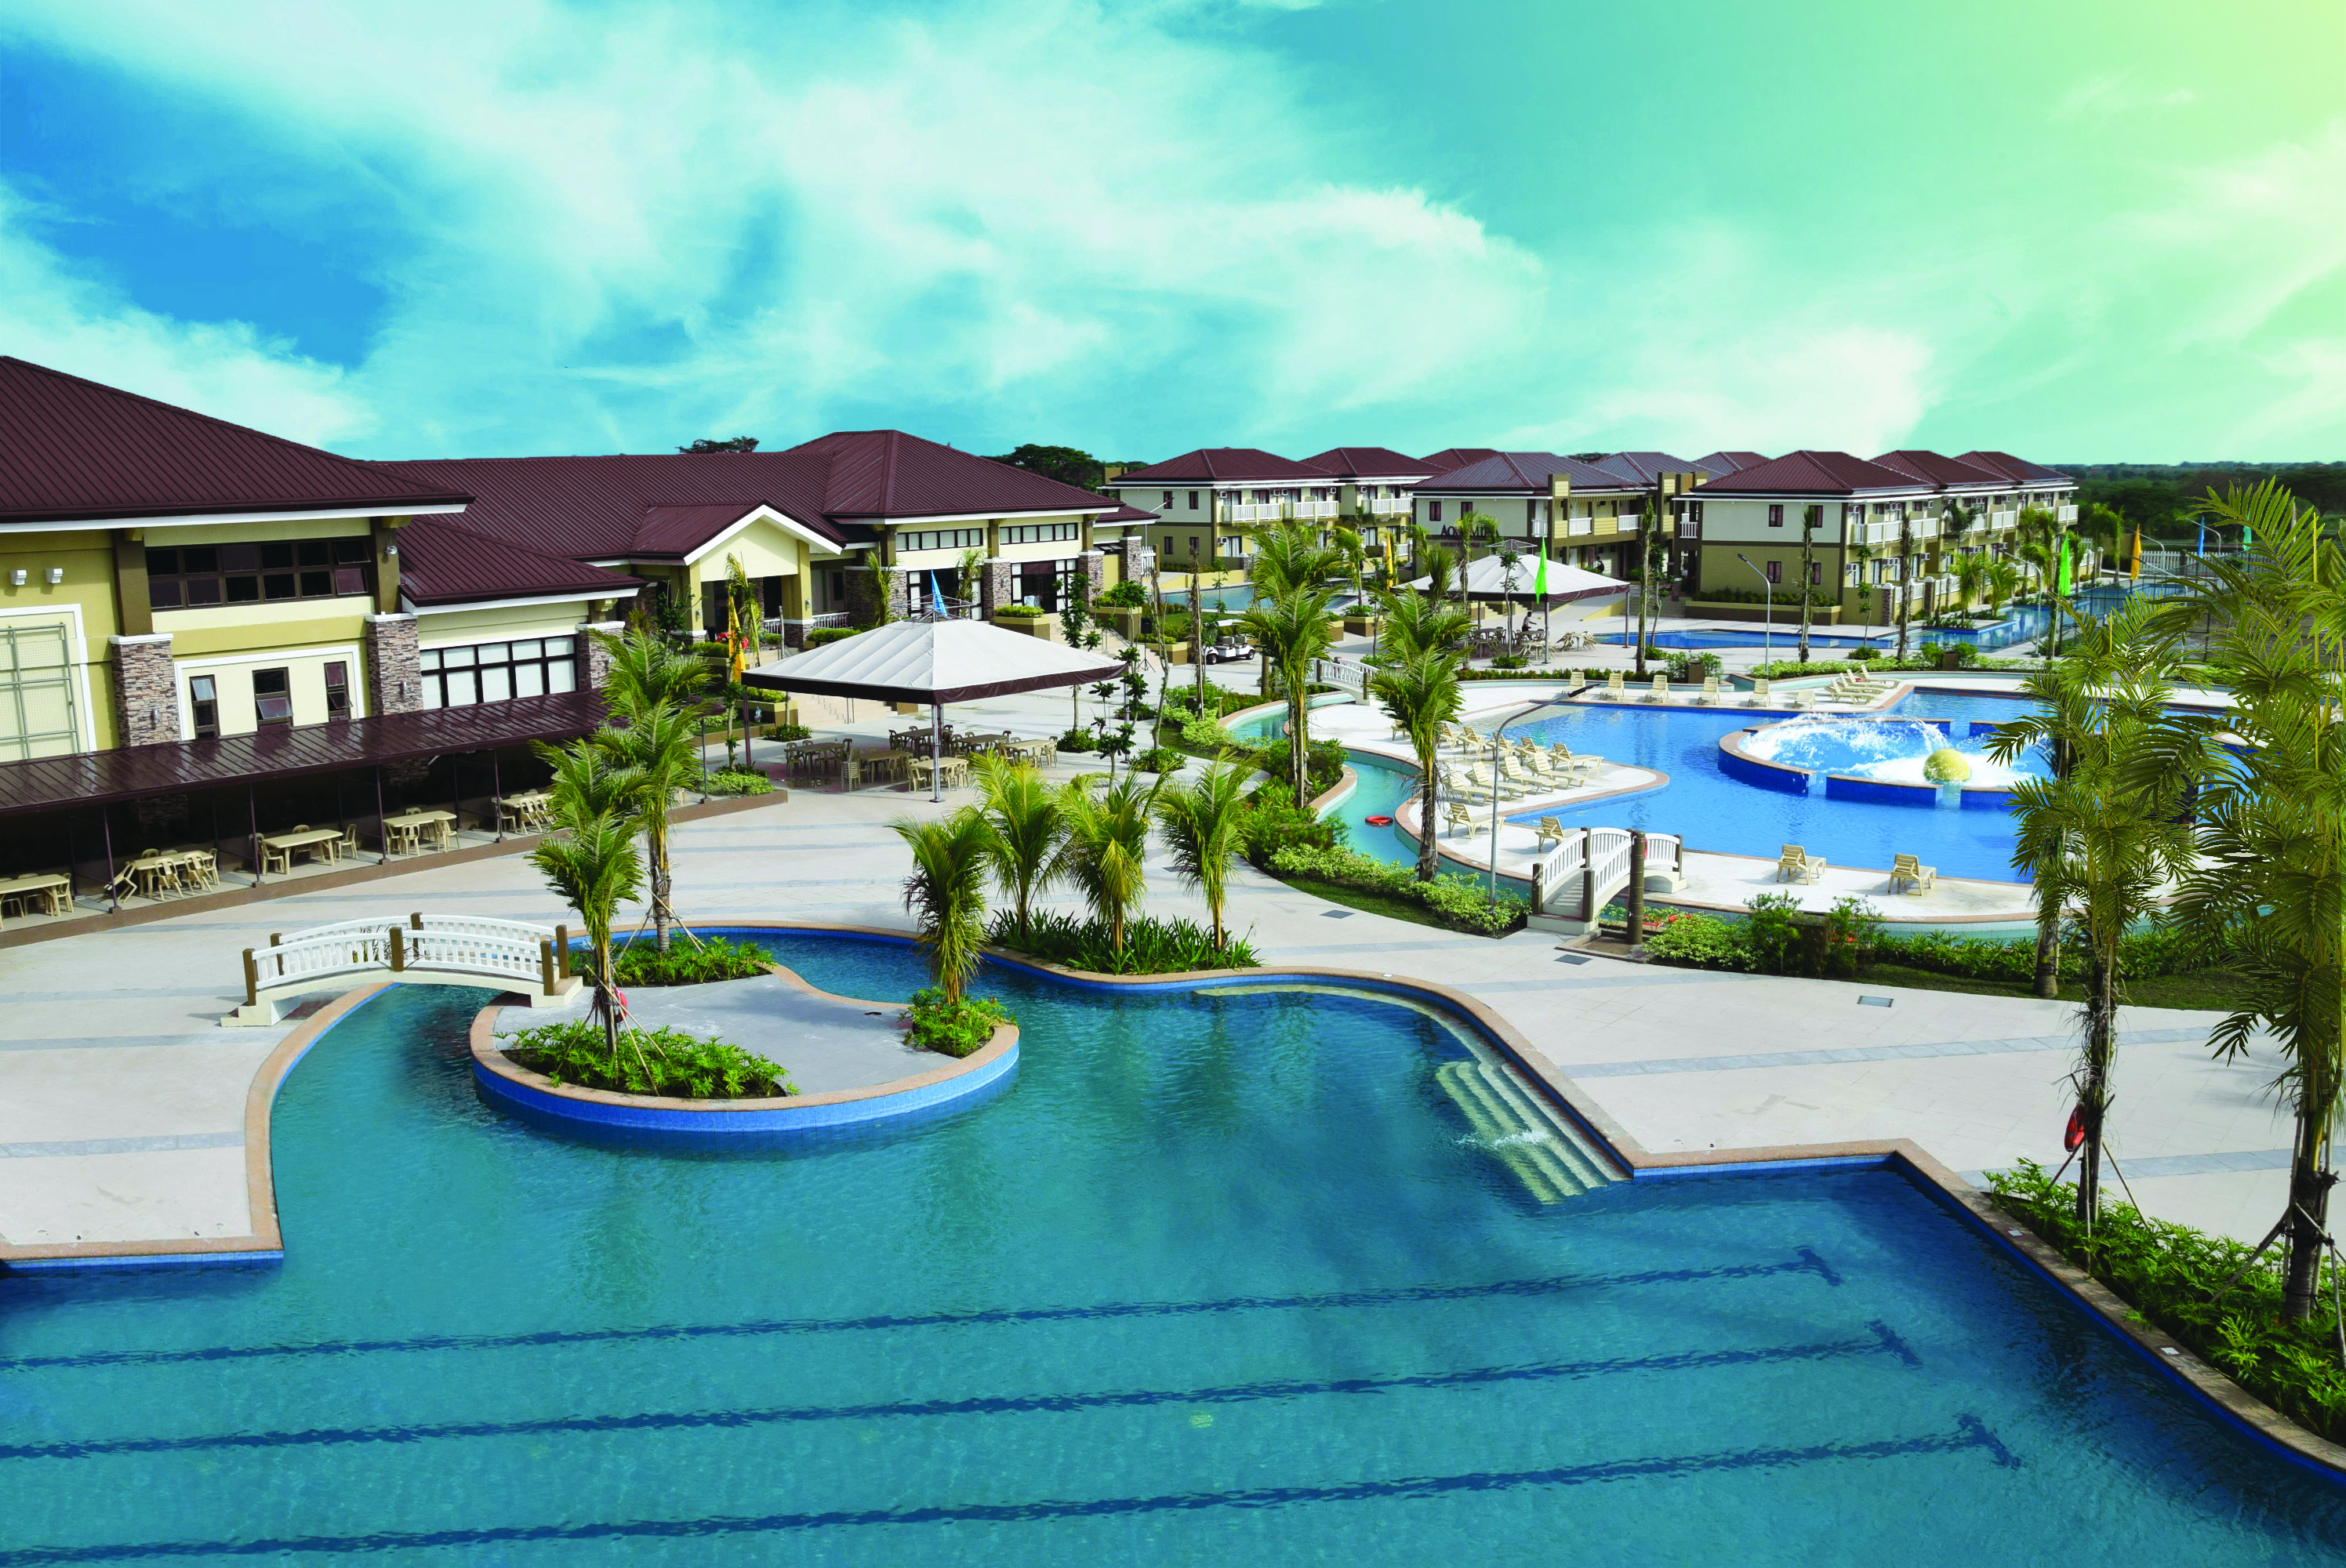 Sta. Lucia prepares hotel, resort expansion on tourism prospects